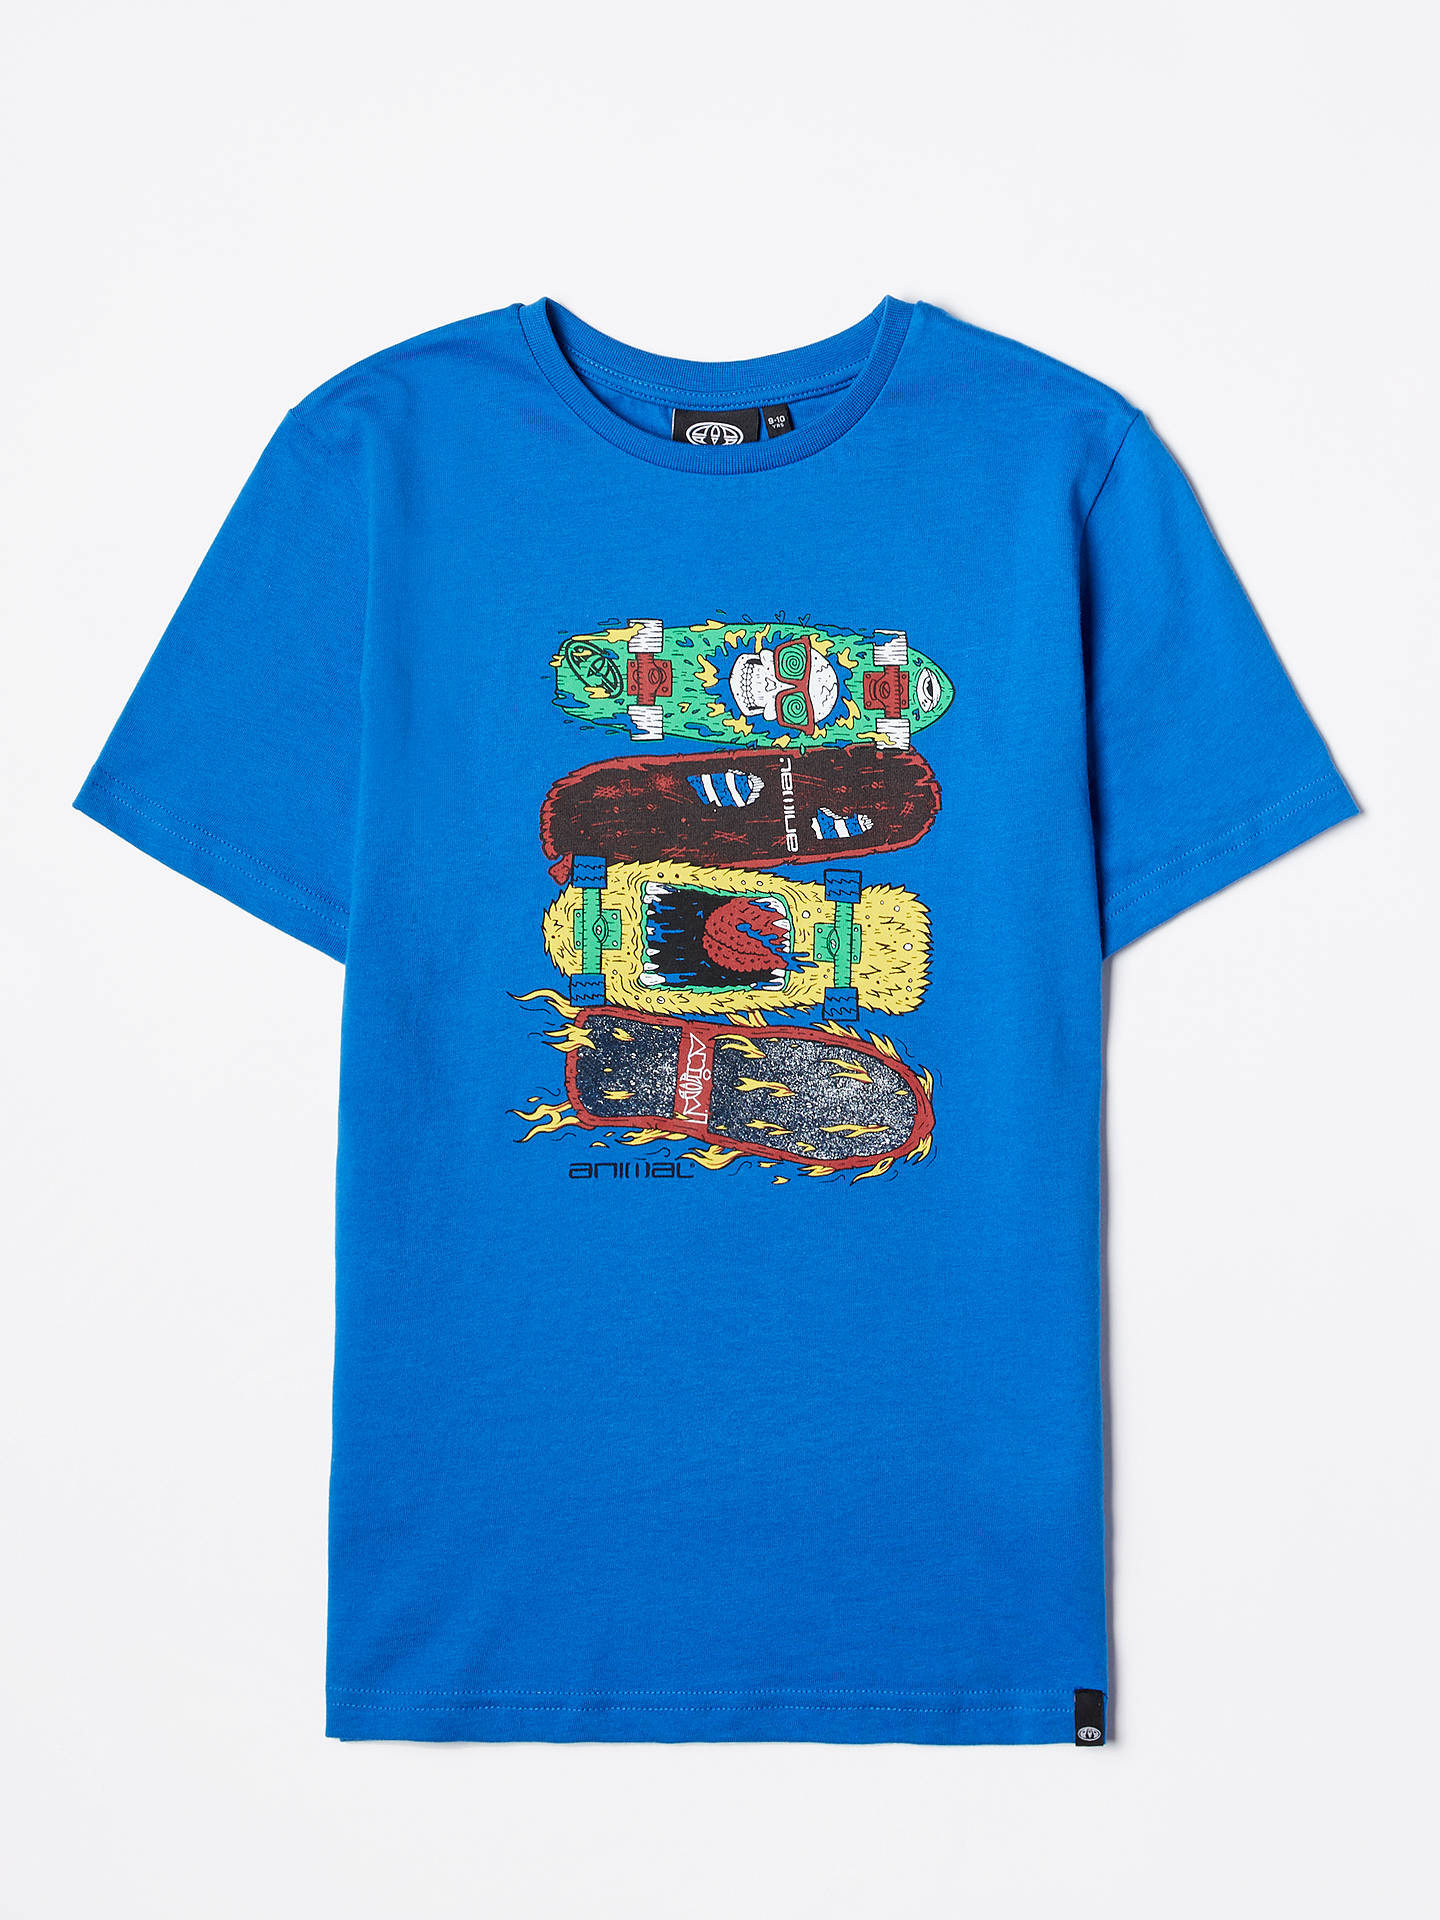 Buy Animal Boys' Tilo Graphic Print T-Shirt, Blue, 7-8 years Online at johnlewis.com